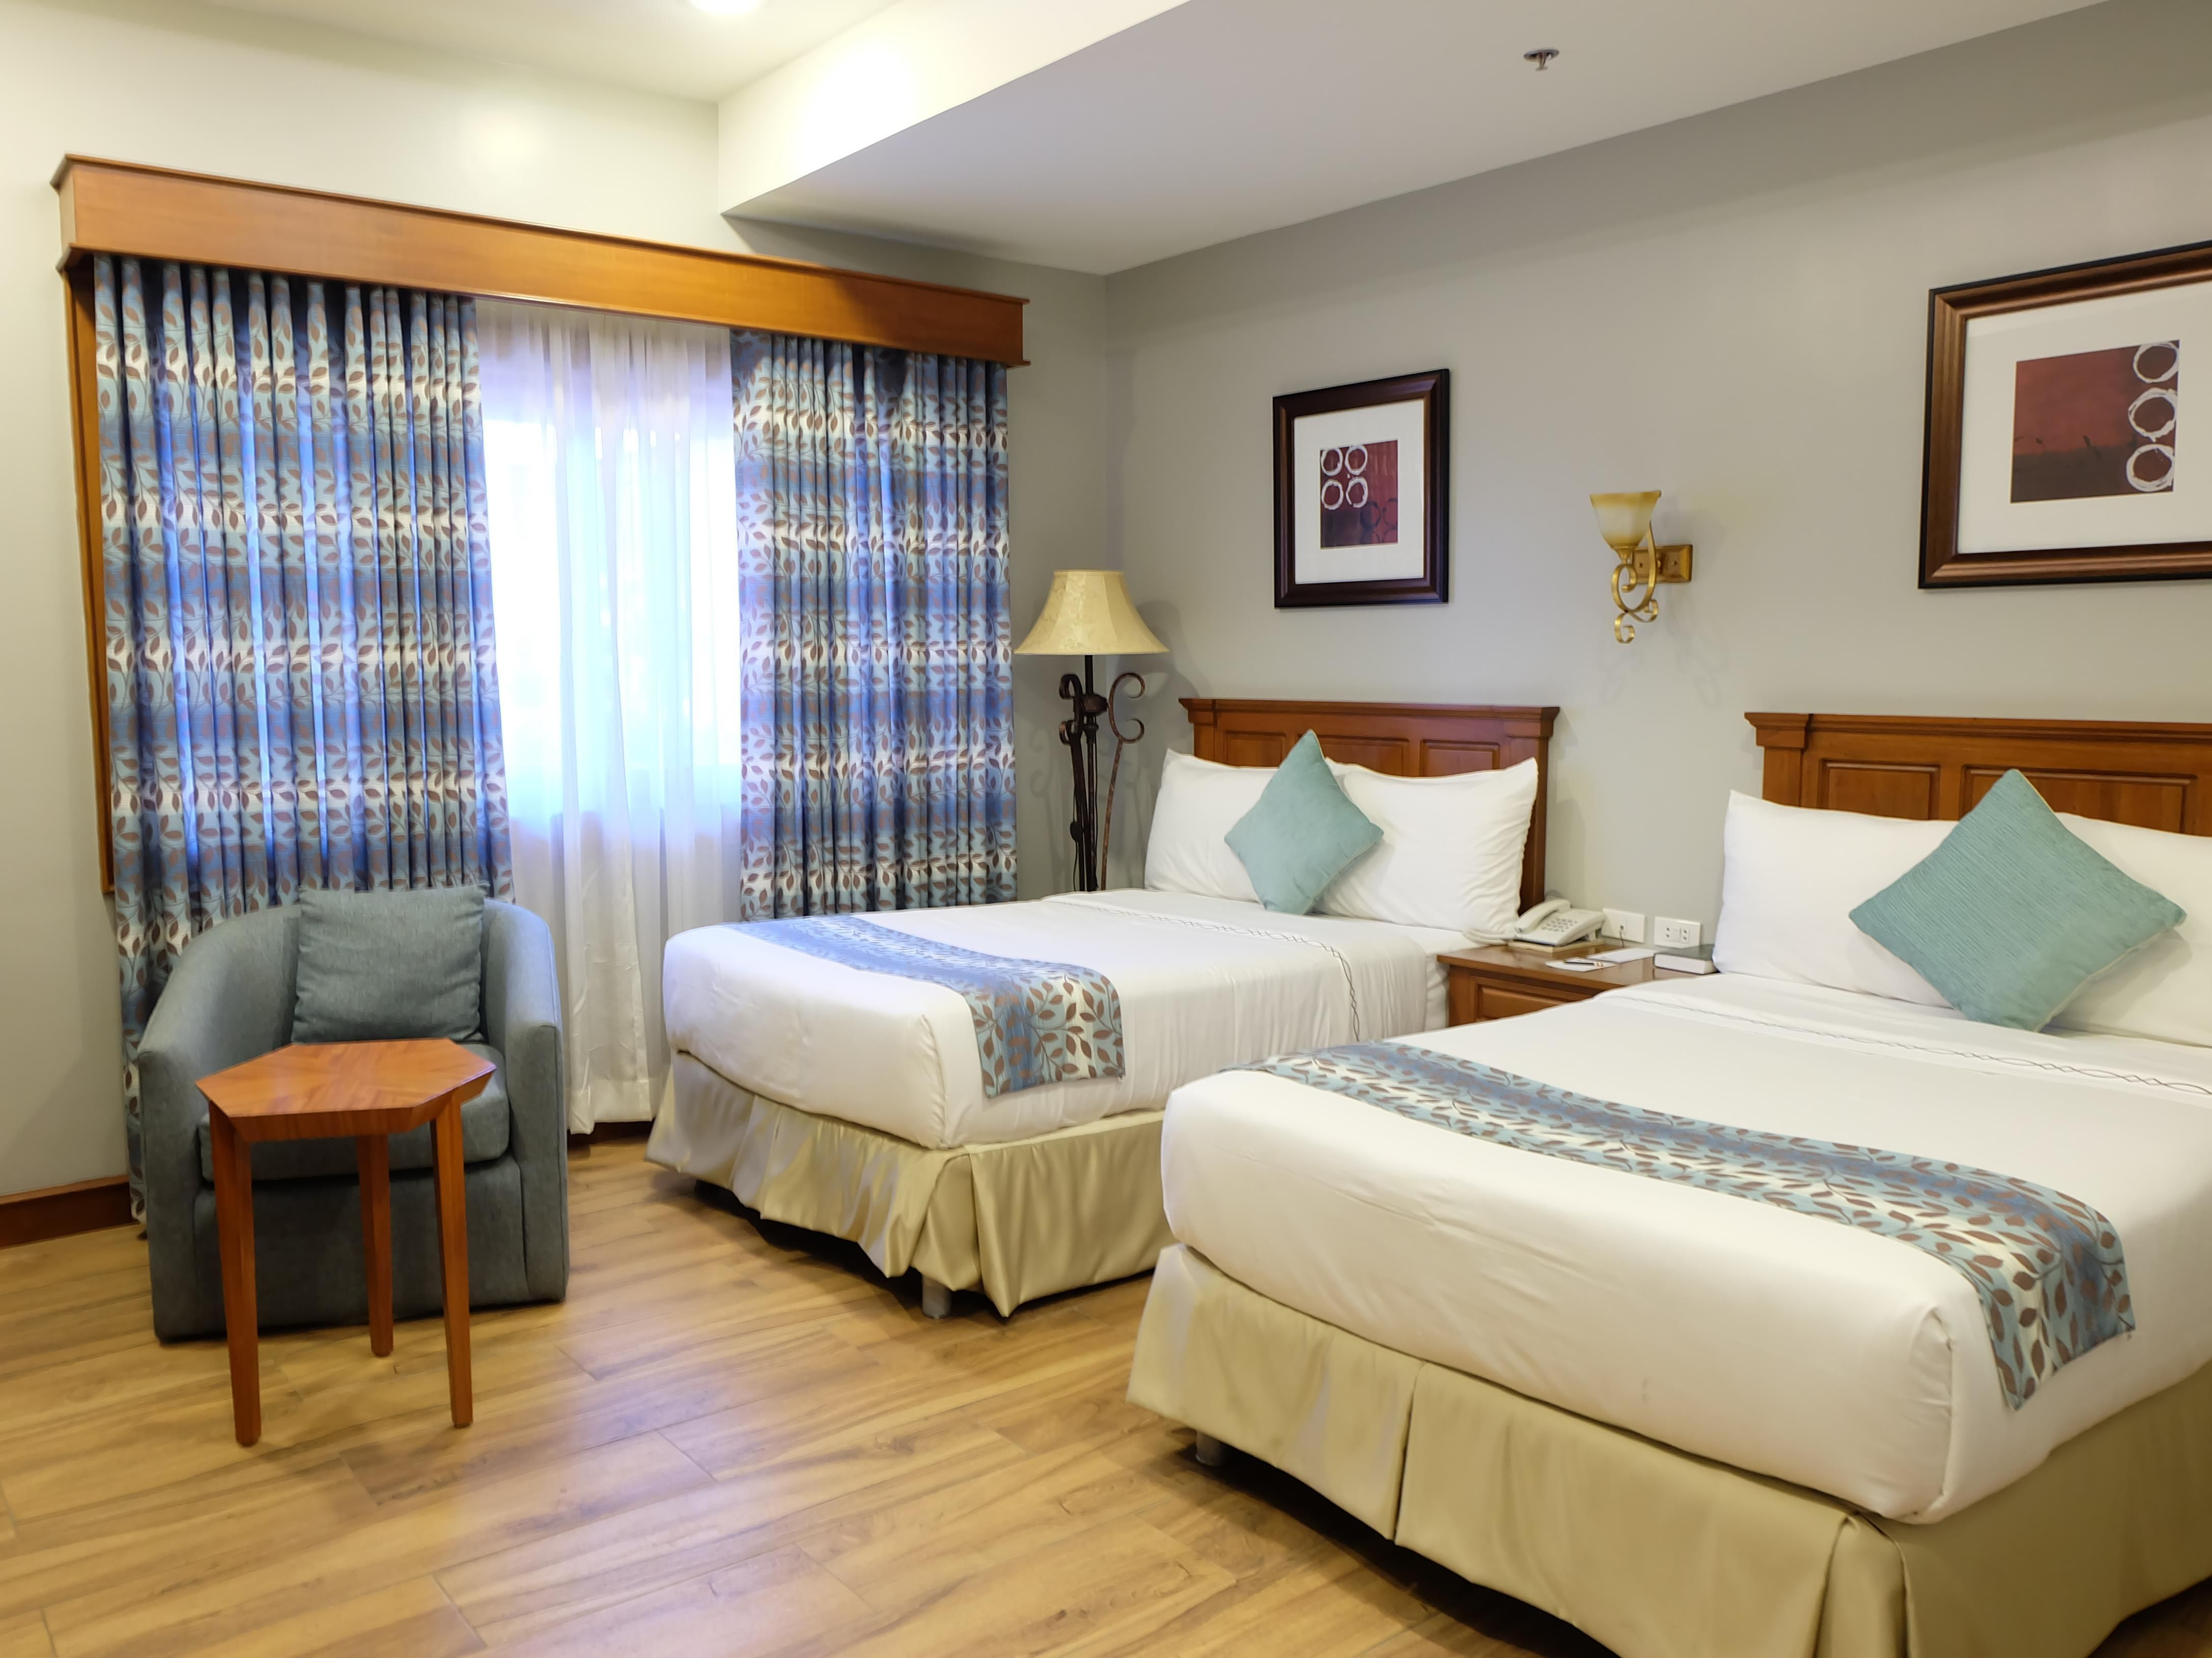 Baguio Paragon Hotel And Suites Philippines Asia Located In City Proper